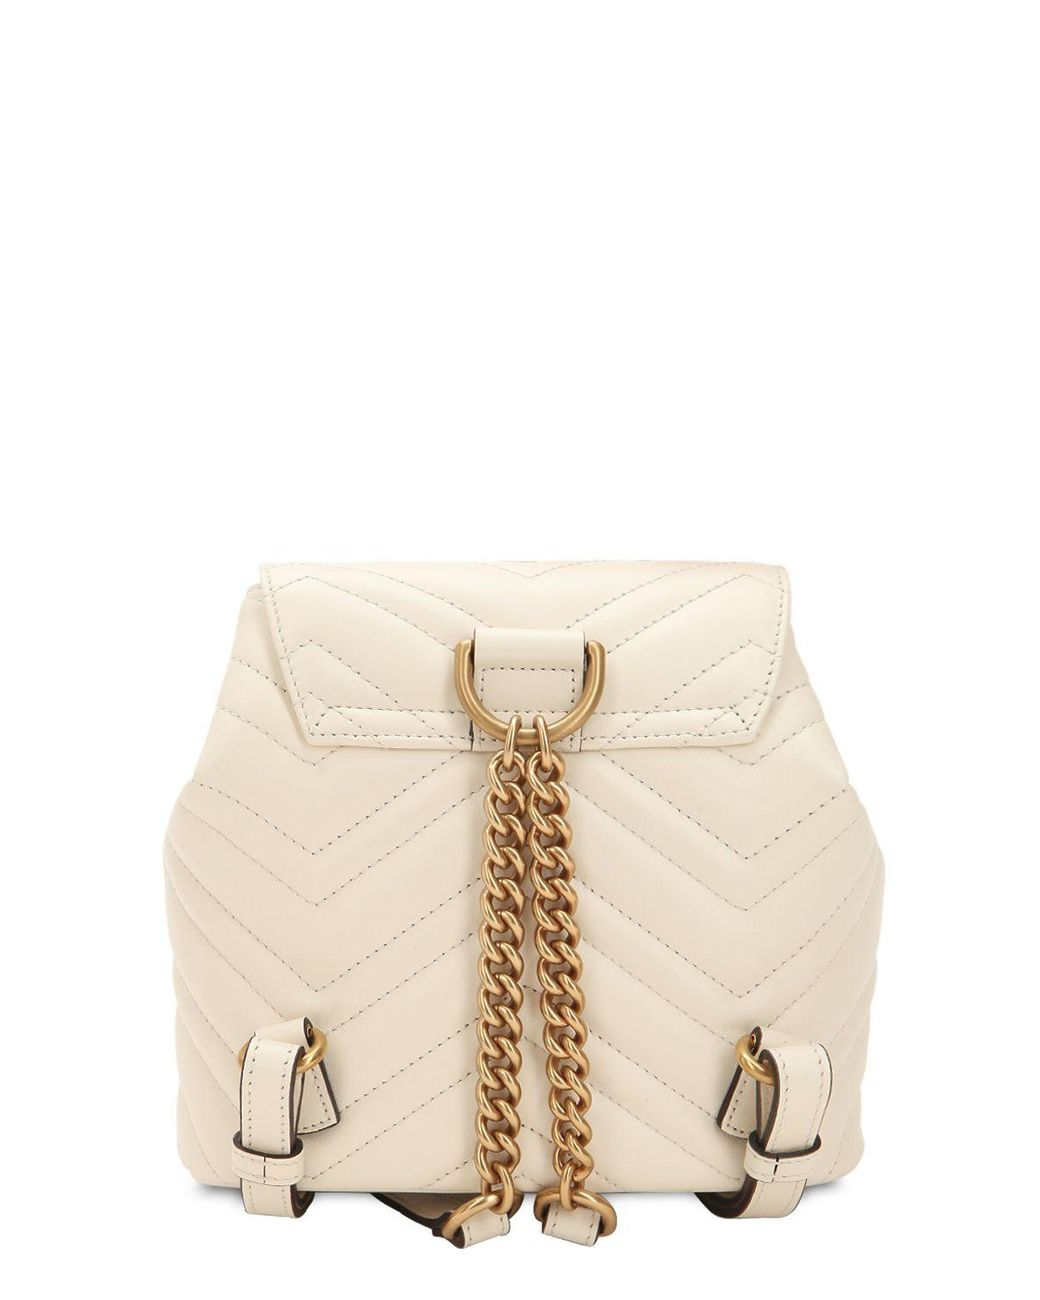 e52955119c41fc Gucci Mini Gg Marmont Leather Backpack in White - Save 15% - Lyst